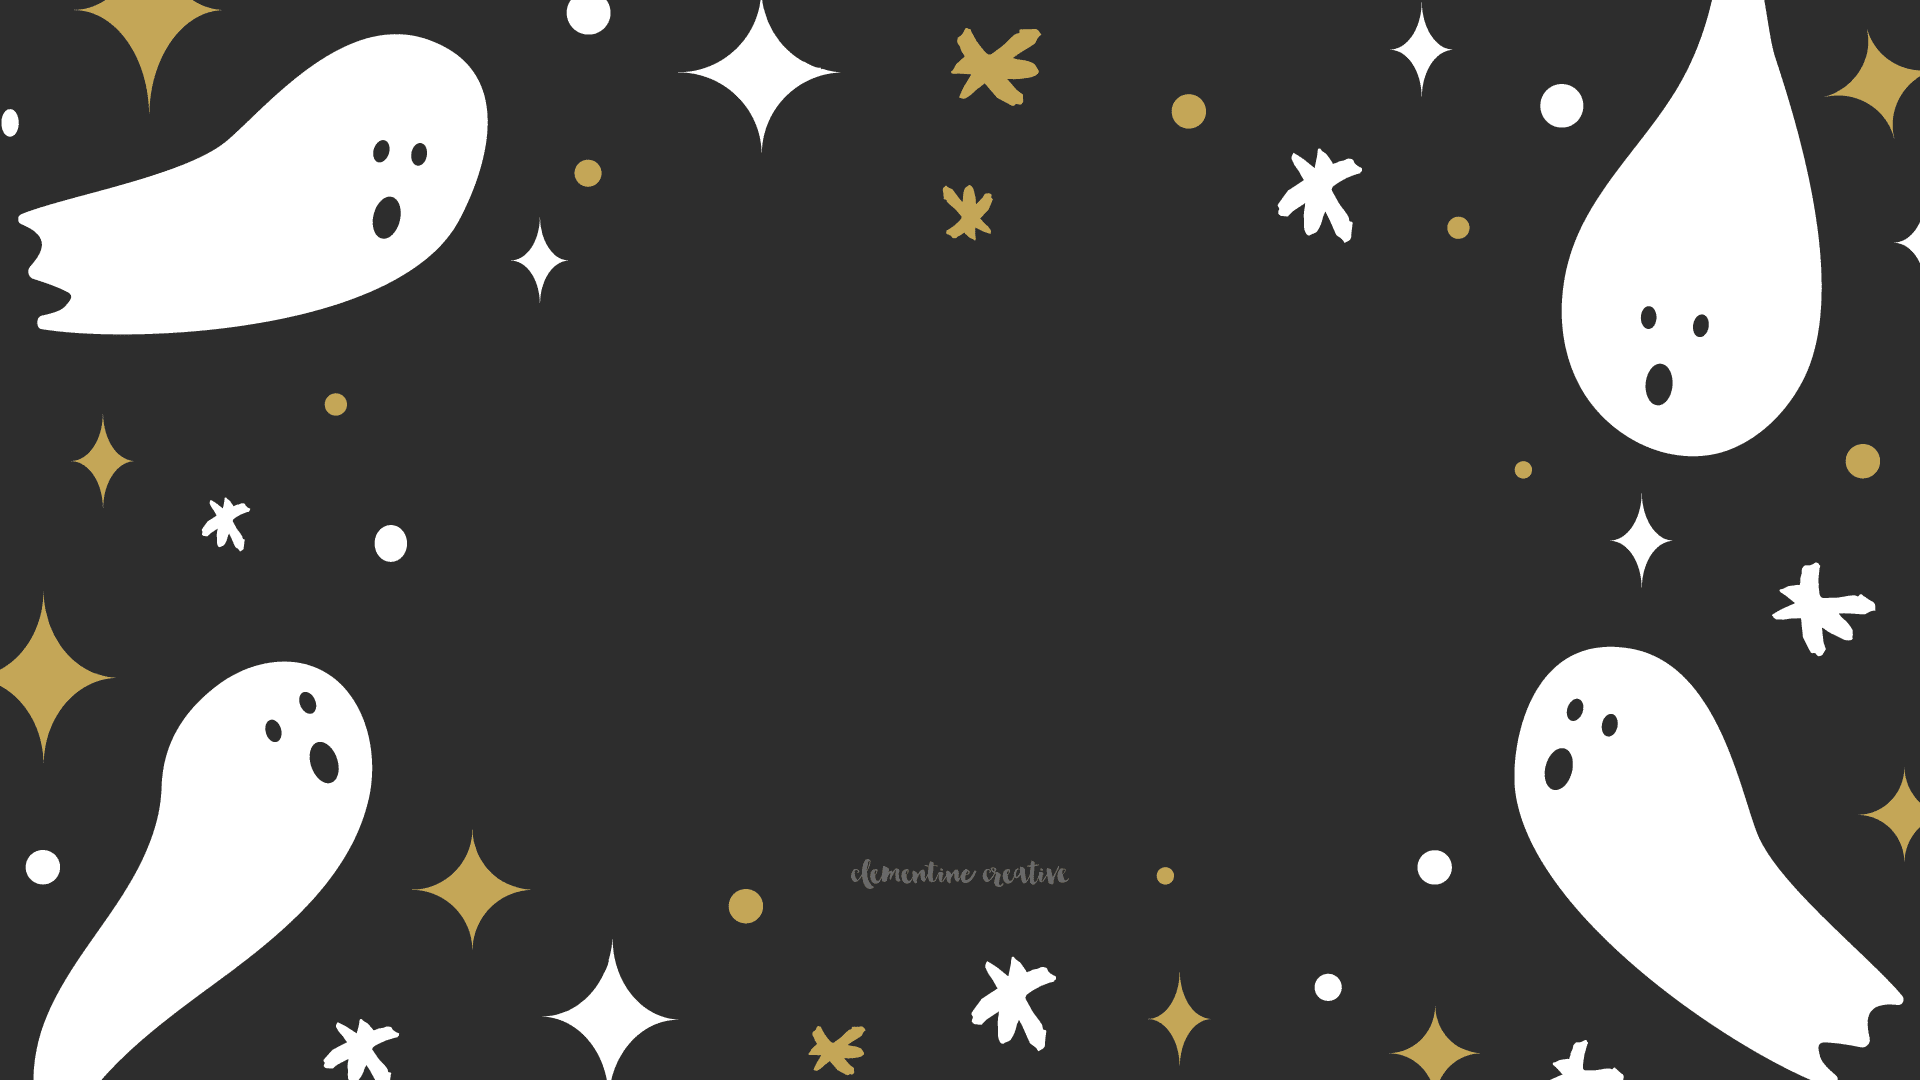 Ghosts and stars on a black background